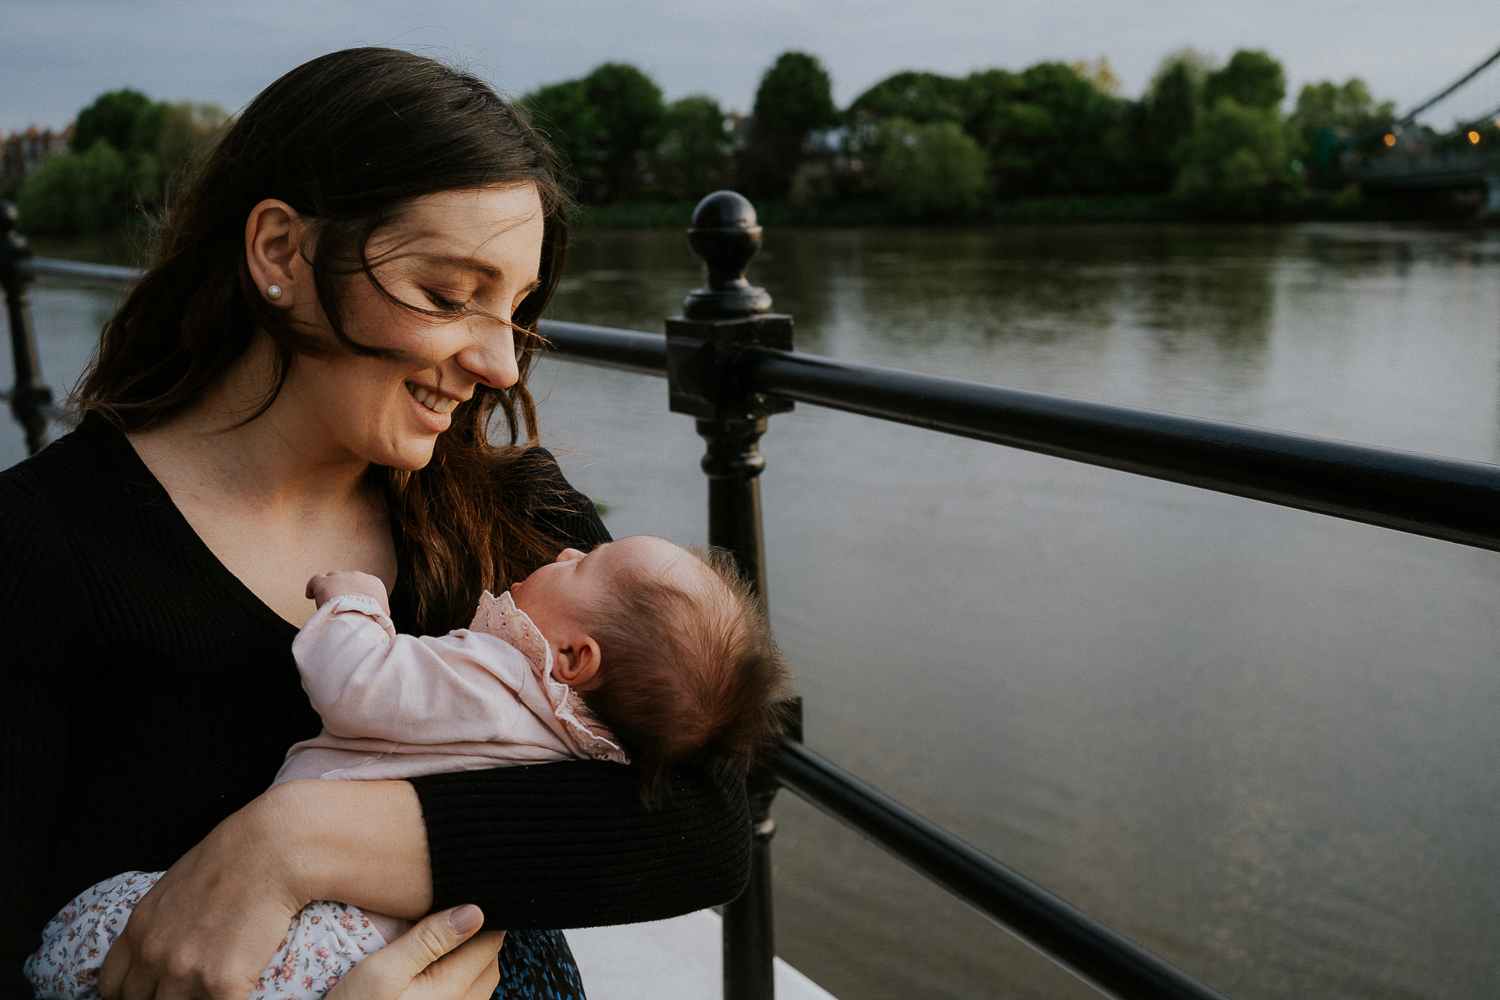 London family photography 2020 mother and baby daughter outdoors